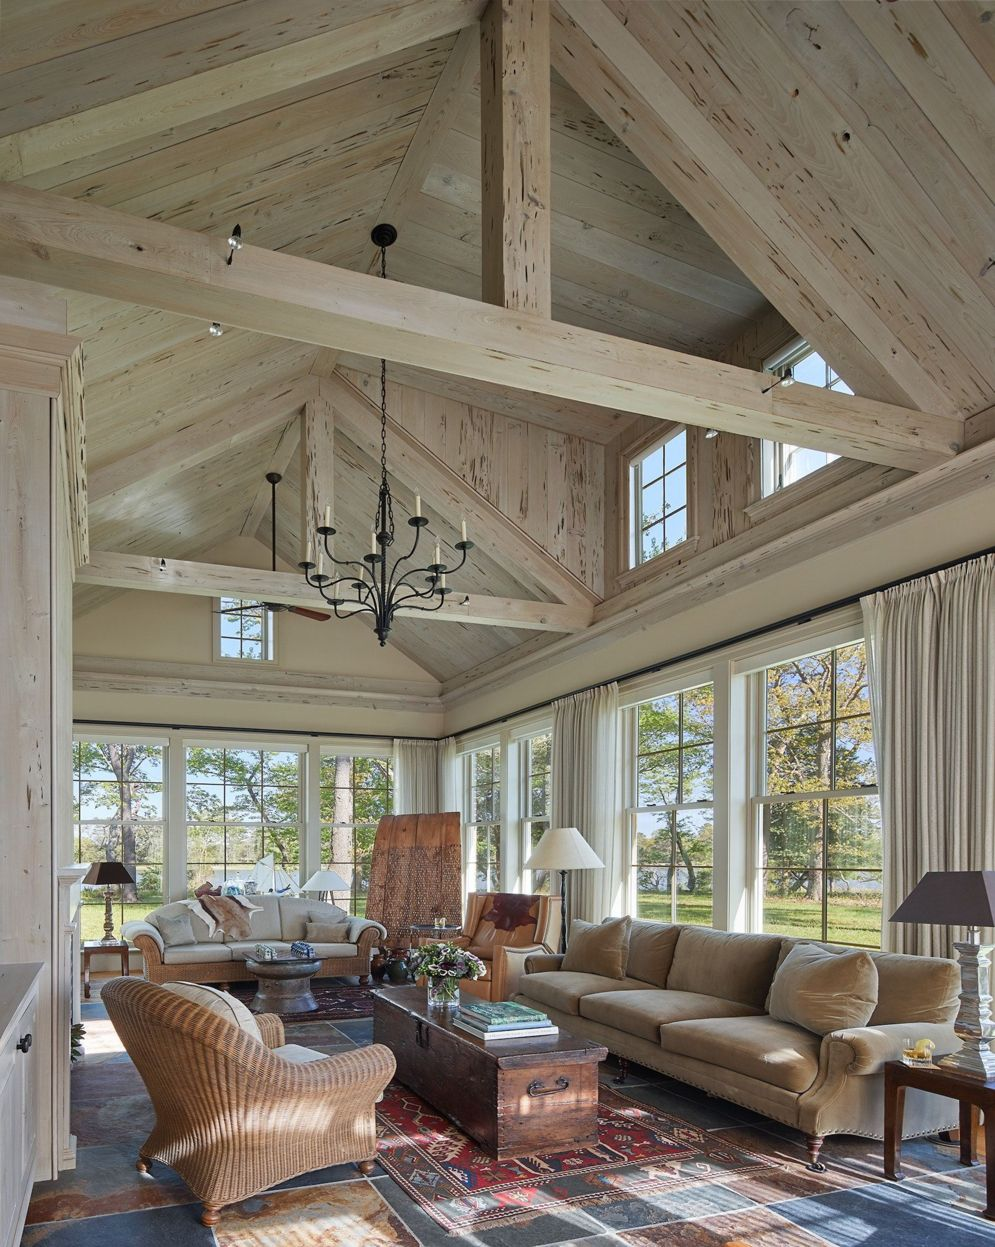 Spacious home images with vaulted ceiling showcasing grand and wonderful home design Image 30